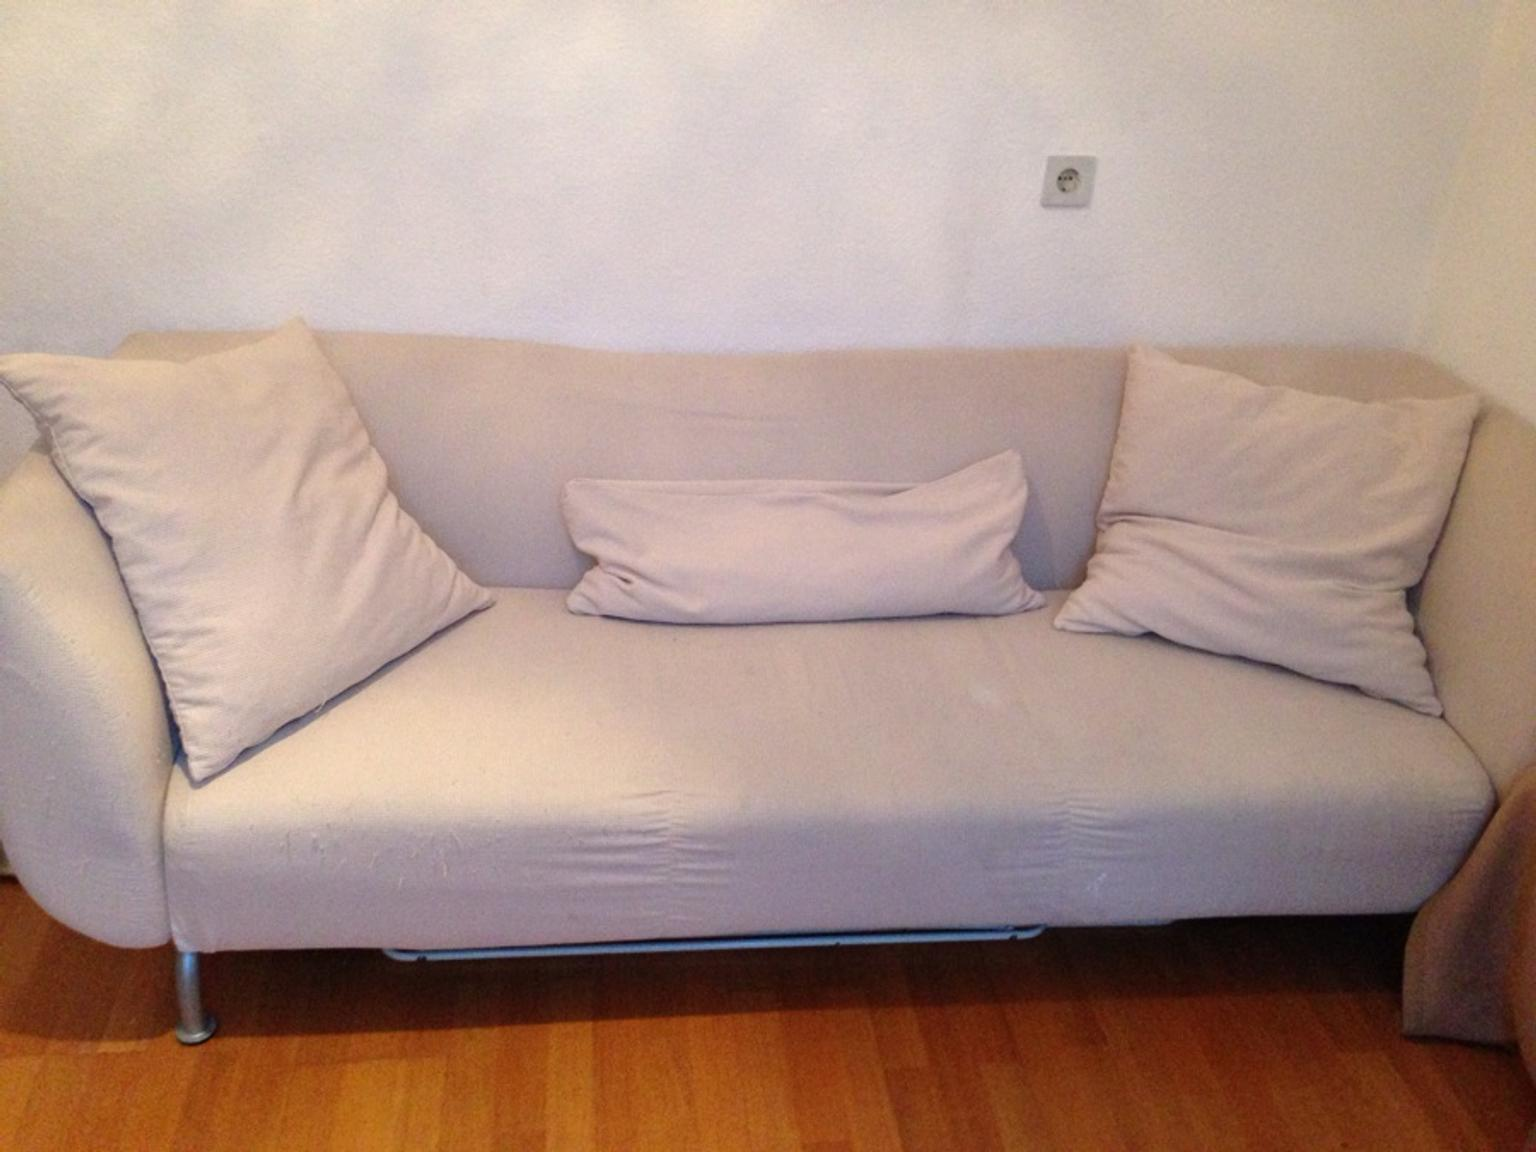 3 Sitzer Sofa Ikea Strömstad in München for free for sale Shpock